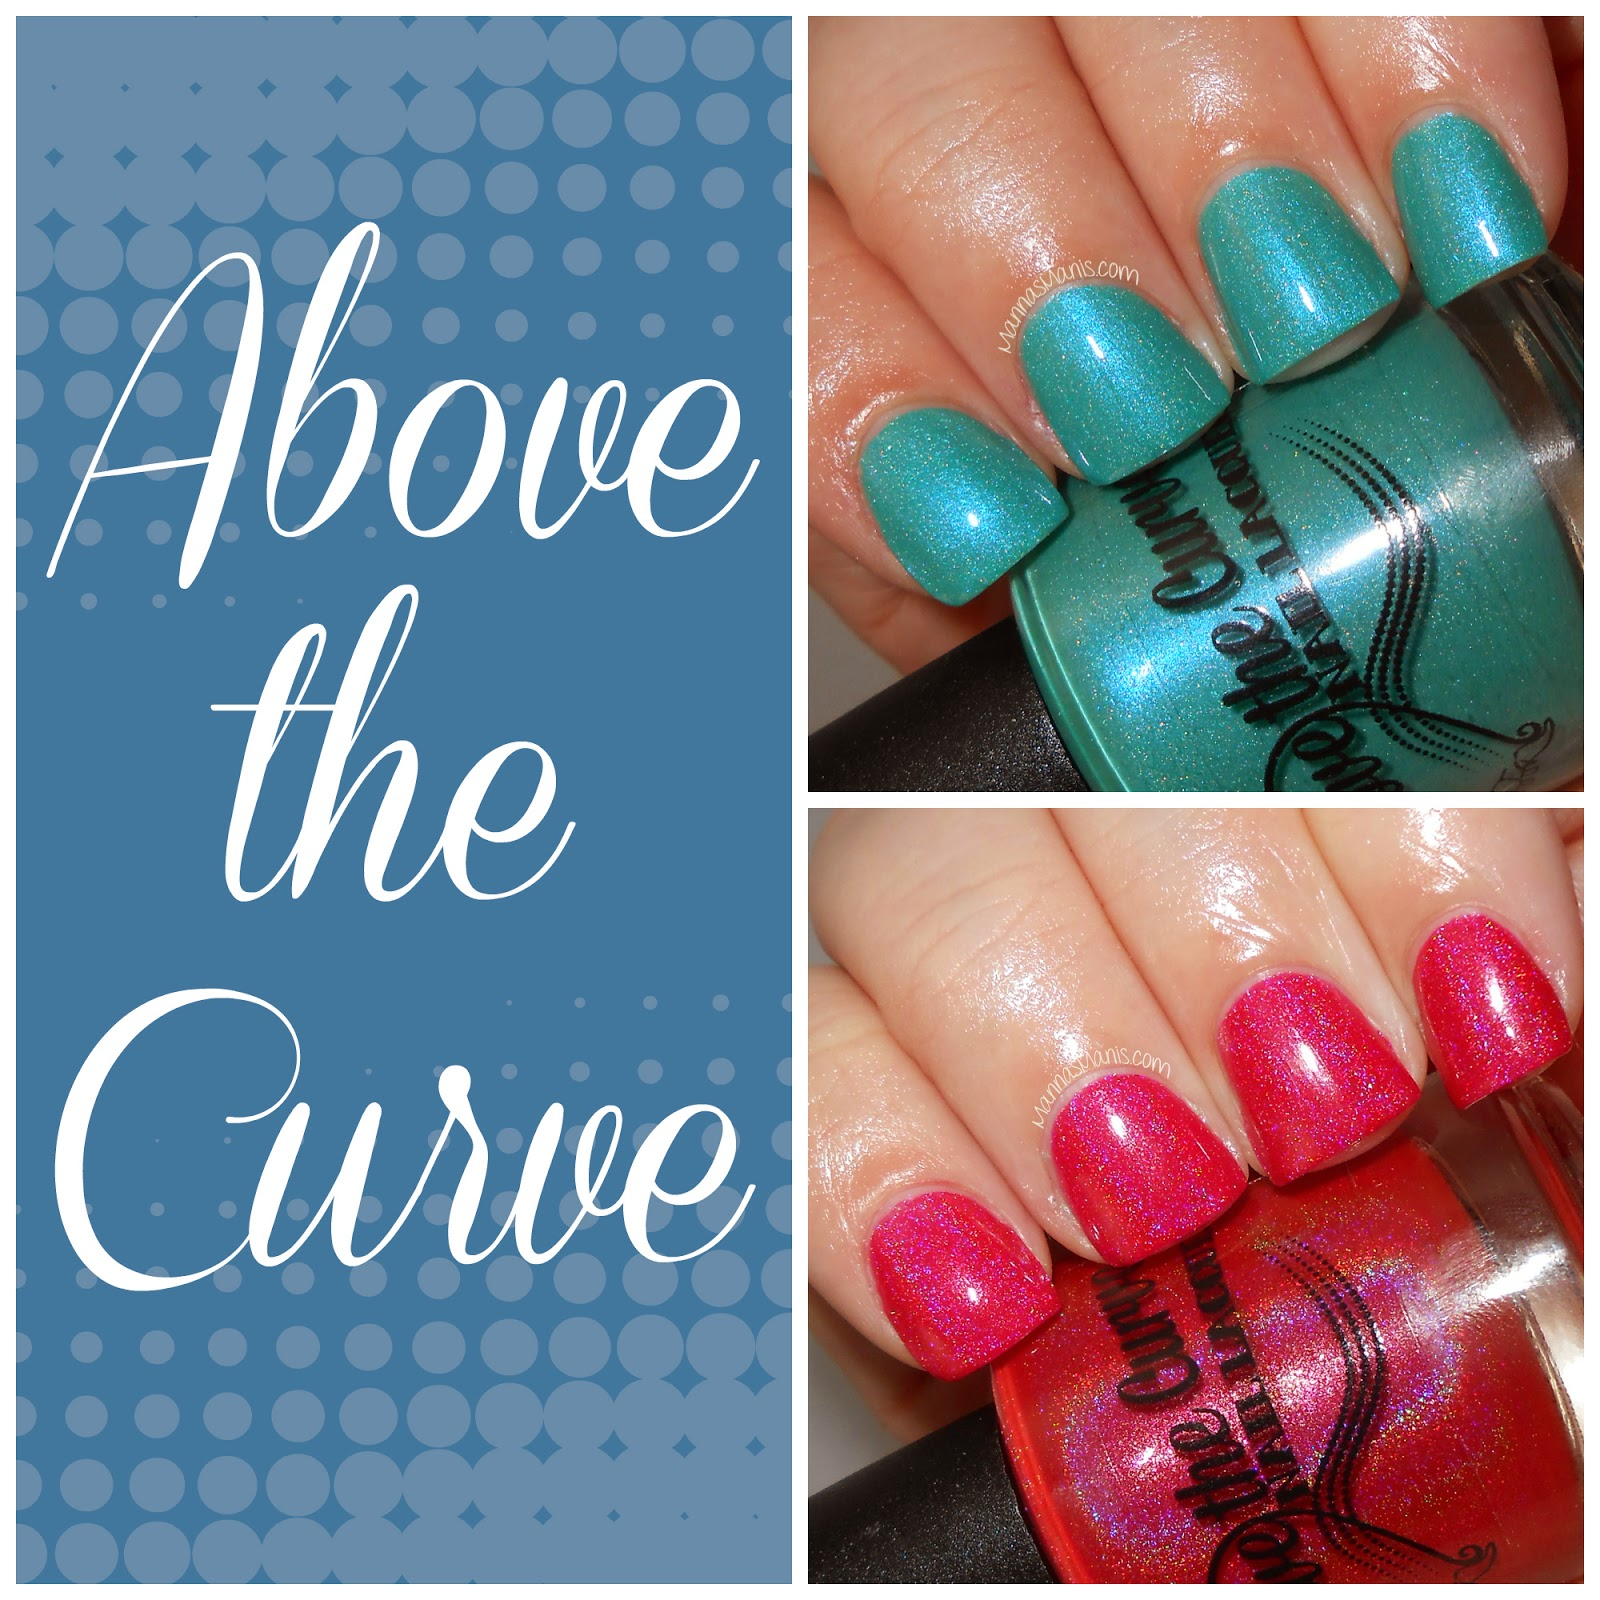 indie nail polish above the curve holographics